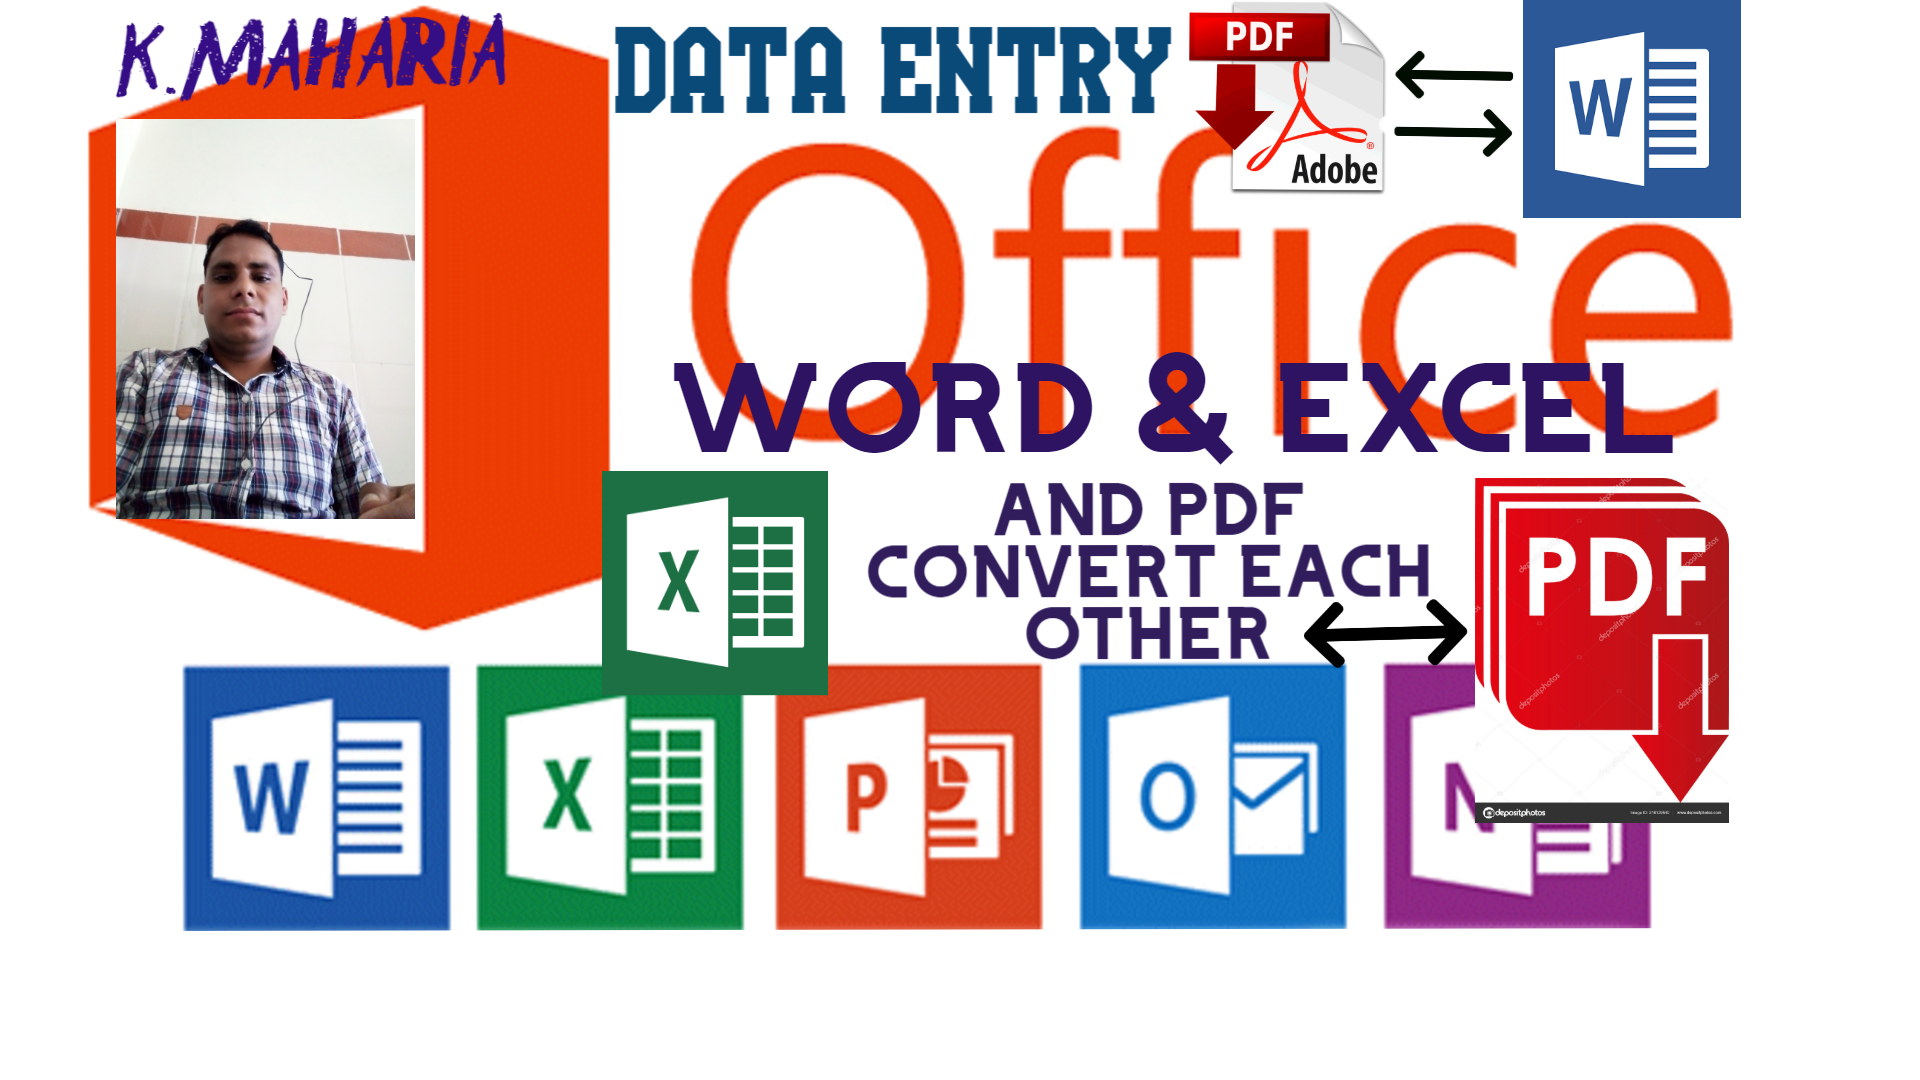 DATA ENTRY OPERATOR, DATA SCRAPING EMAIL, WEB ETC. TYPING IN WORD, EXCEL AND CONVERT TO PDF